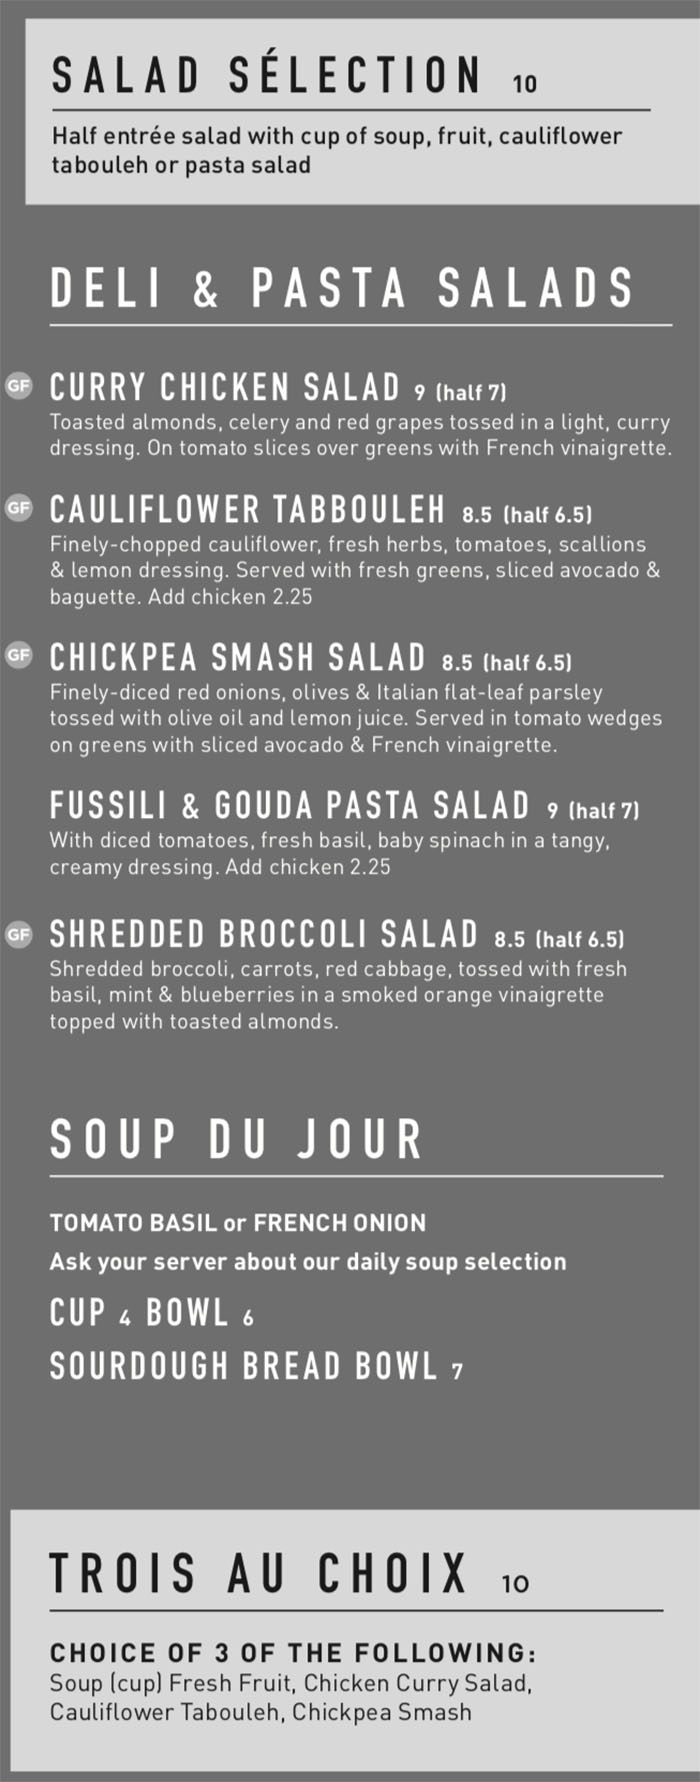 Gourmandise lunch menu - salads, soup